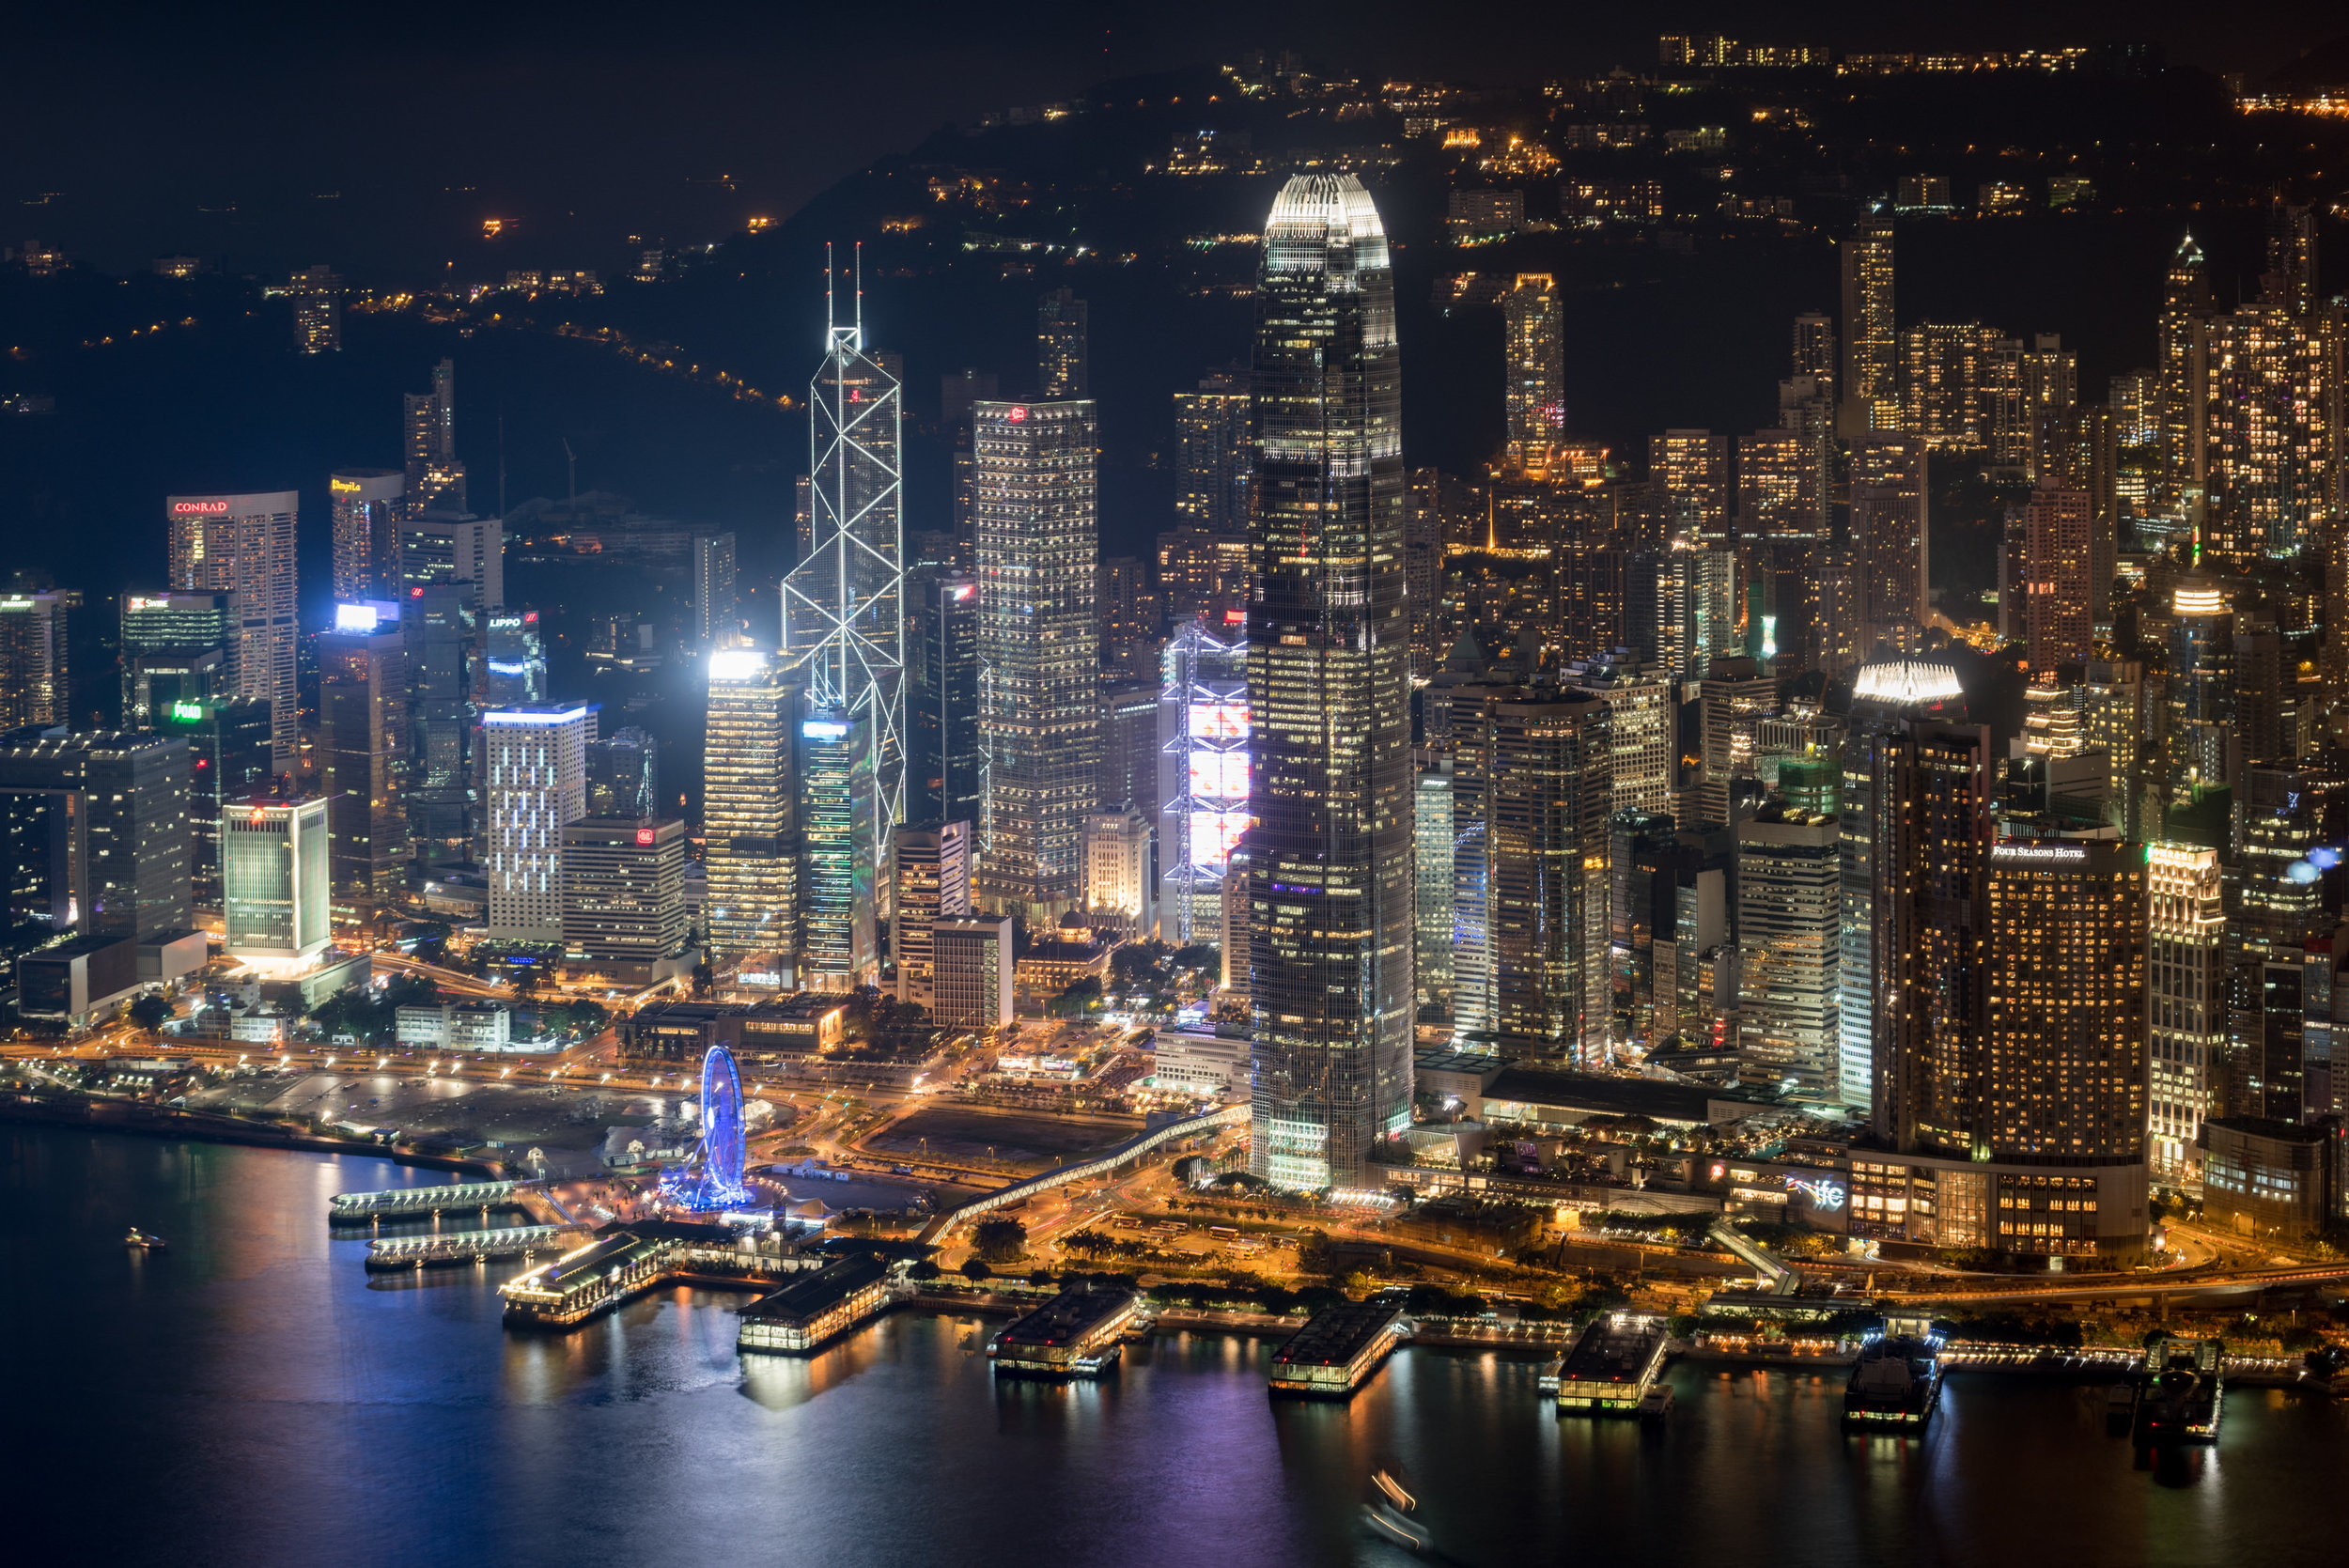 Night View of Victoria Harbour from the Room  Ritz-Carlton Club - The Ritz-Carlton, Hong Kong